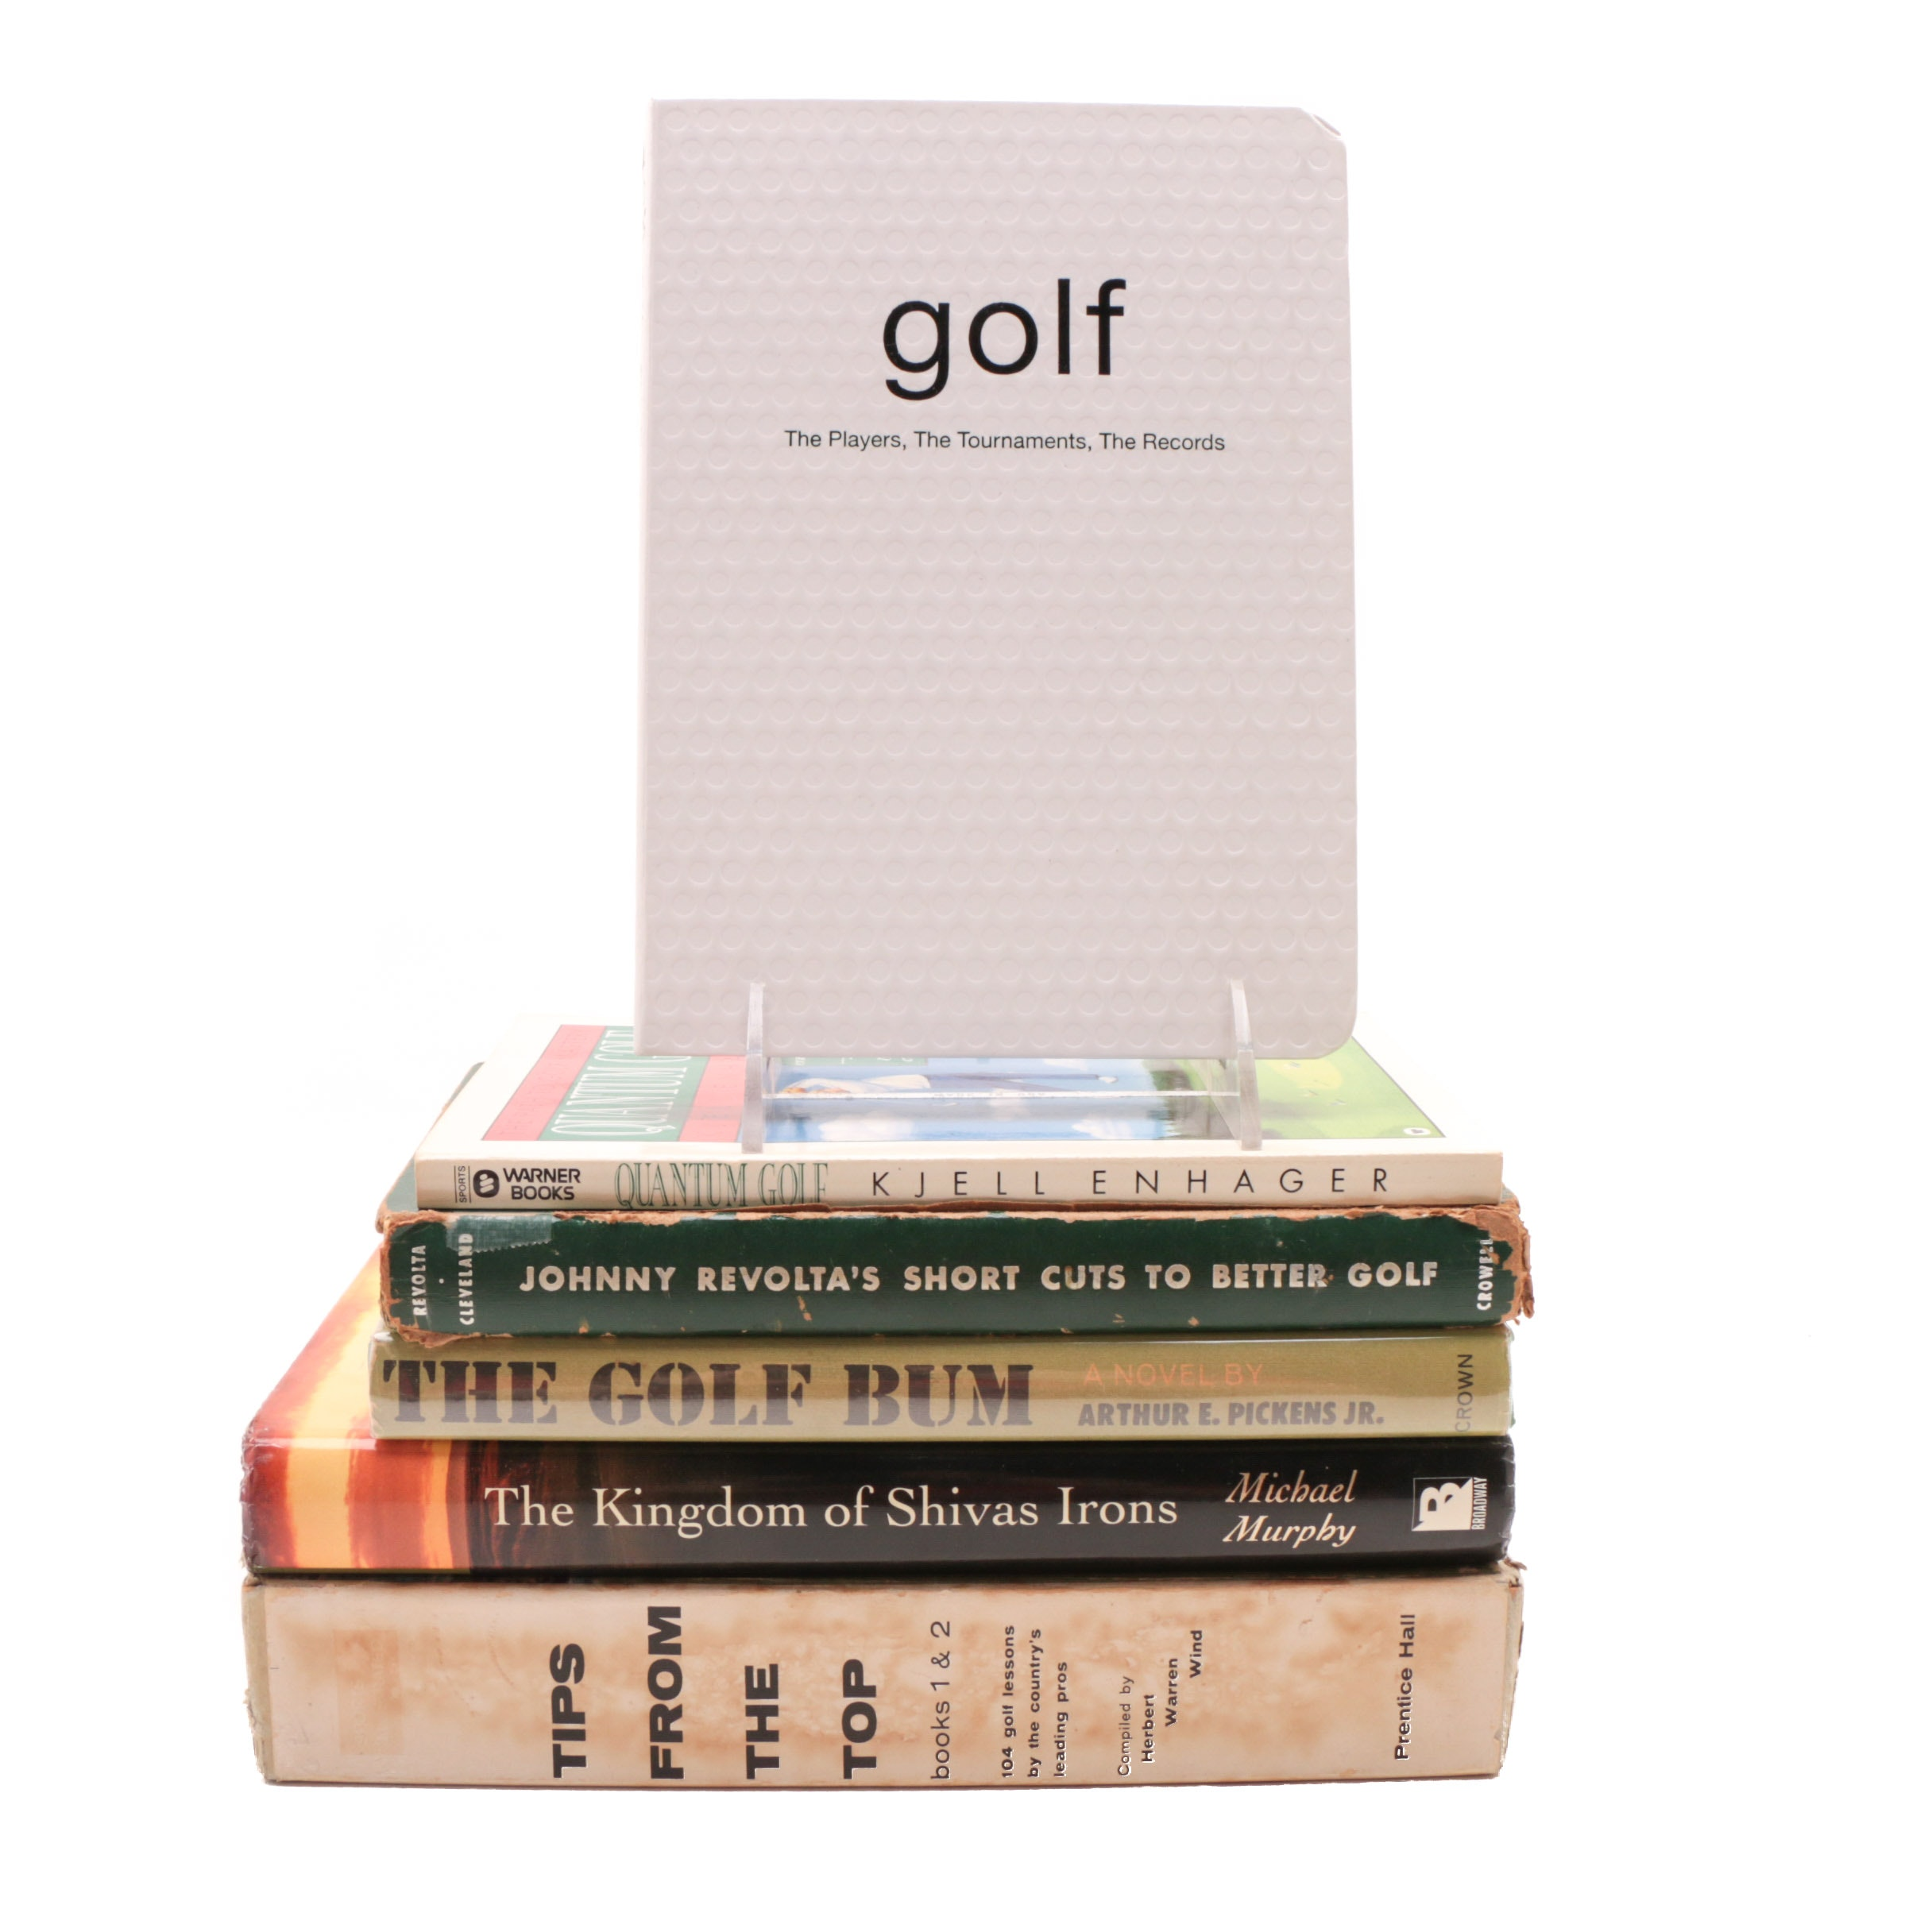 Group of Vintage and Contemporary Golf Books